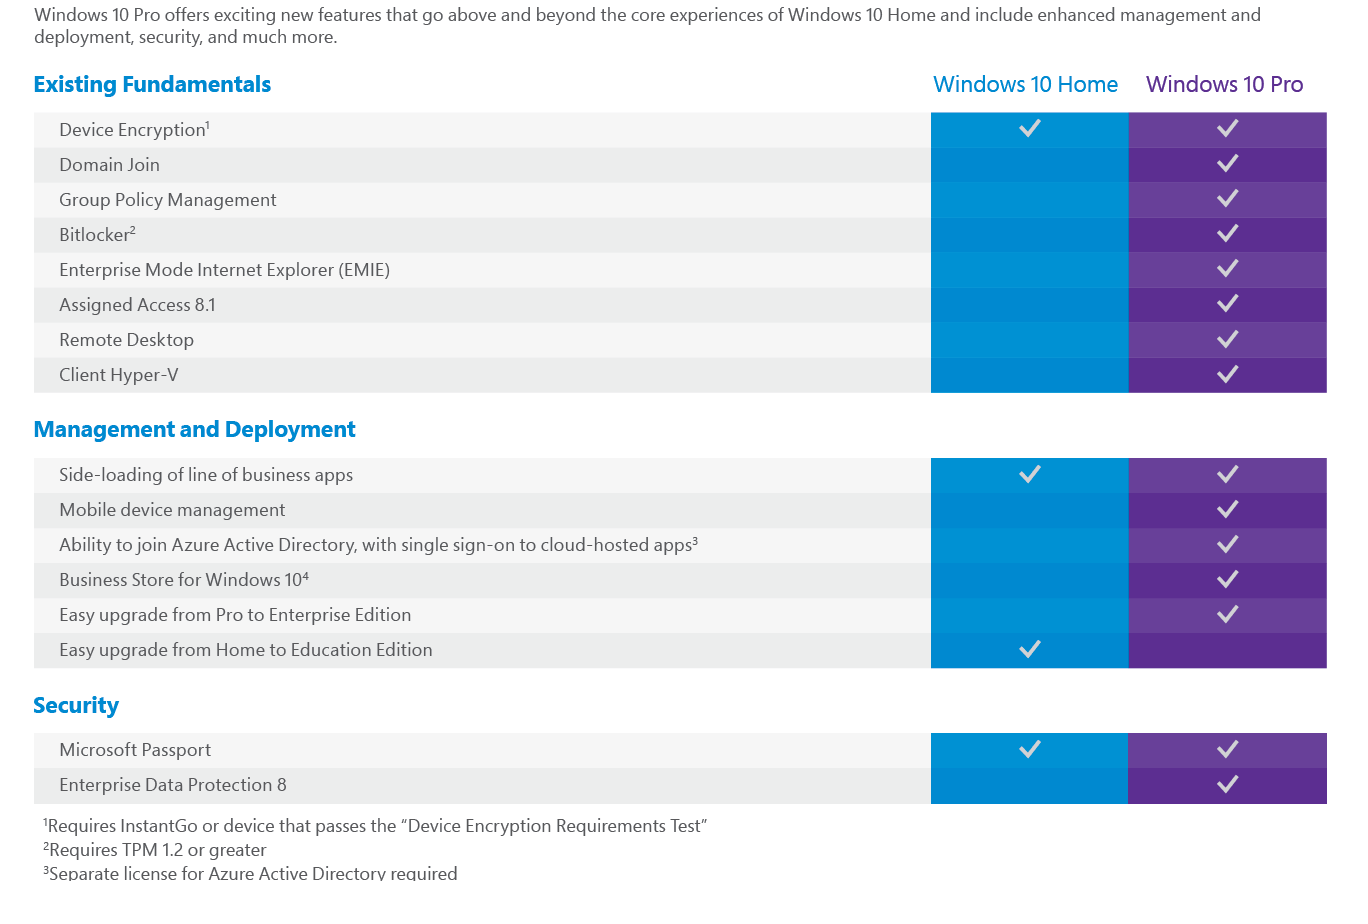 Difference of windows 10 home and windows 10 pro